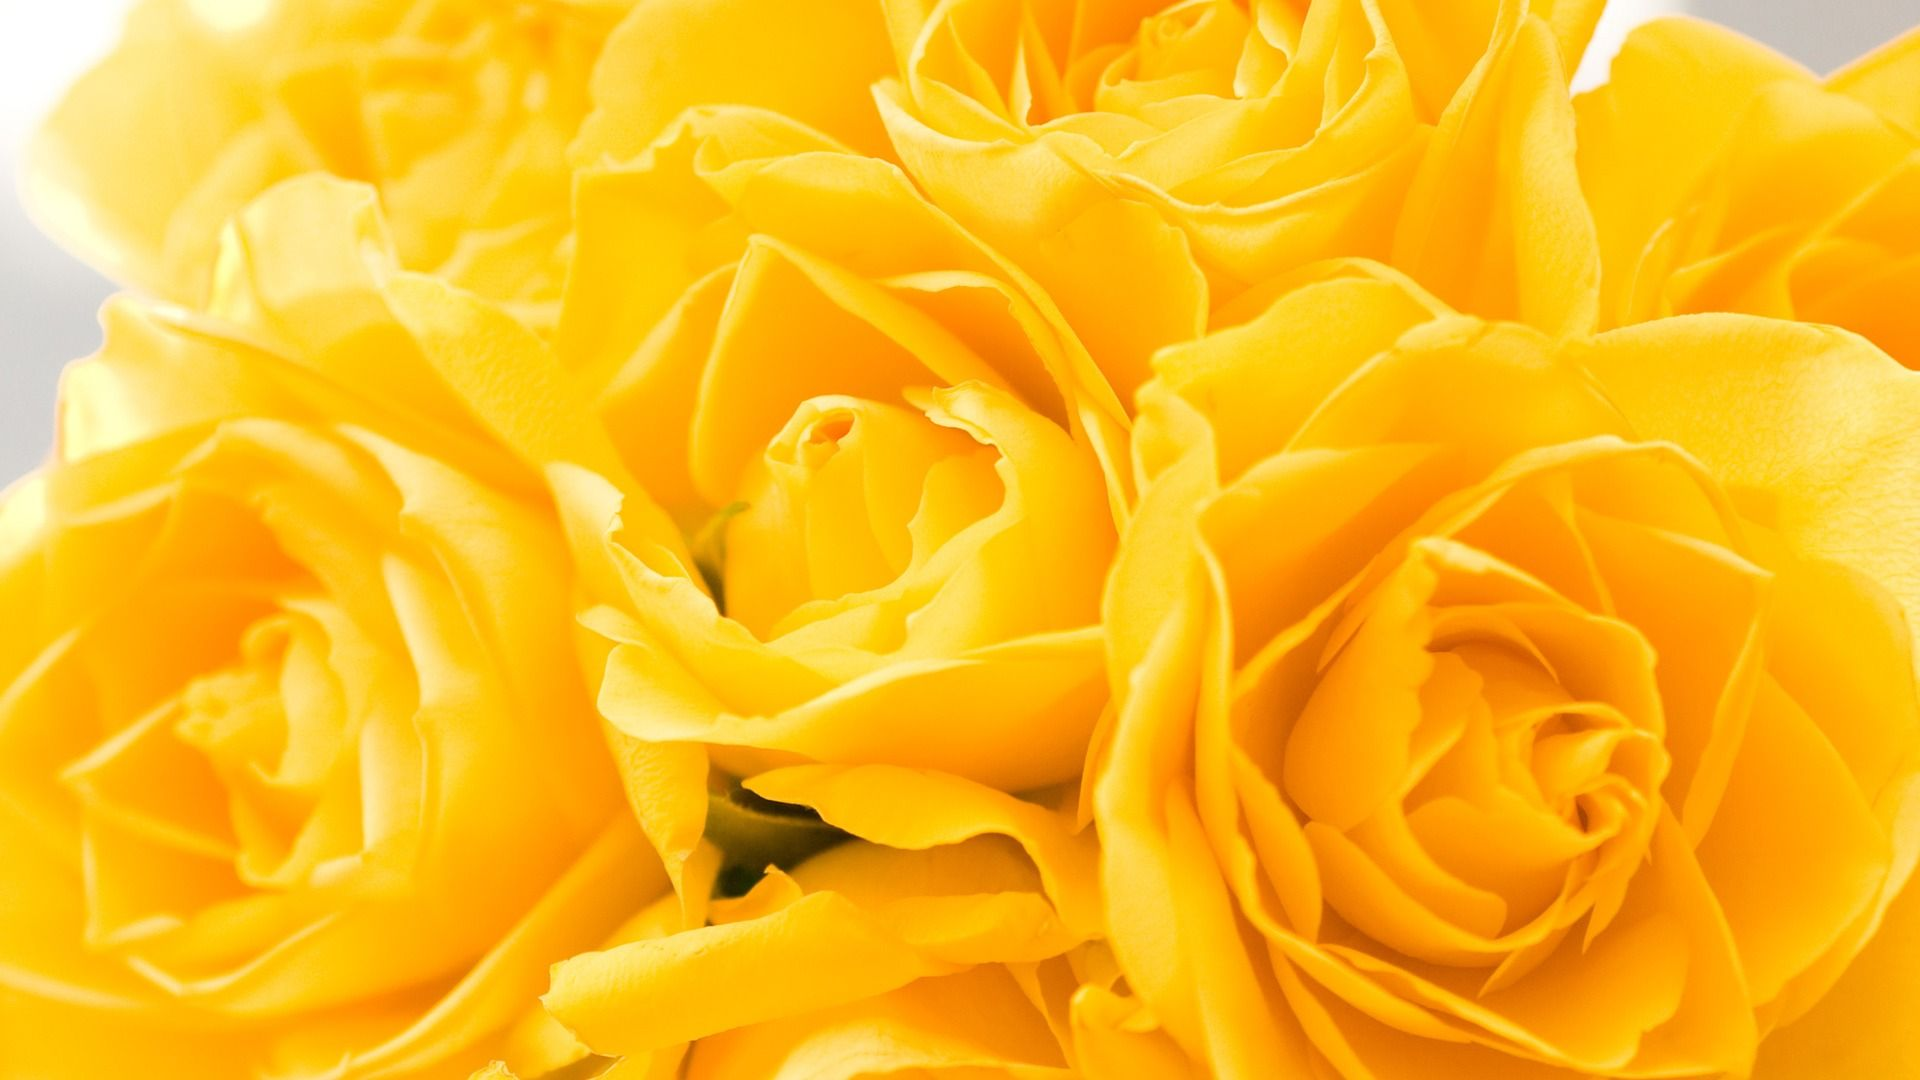 Yellow Roses 1920 X 1080 Wallpaper Beautiful Flowers Pictures Beautiful Flowers Wallpapers Yellow Flower Wallpaper